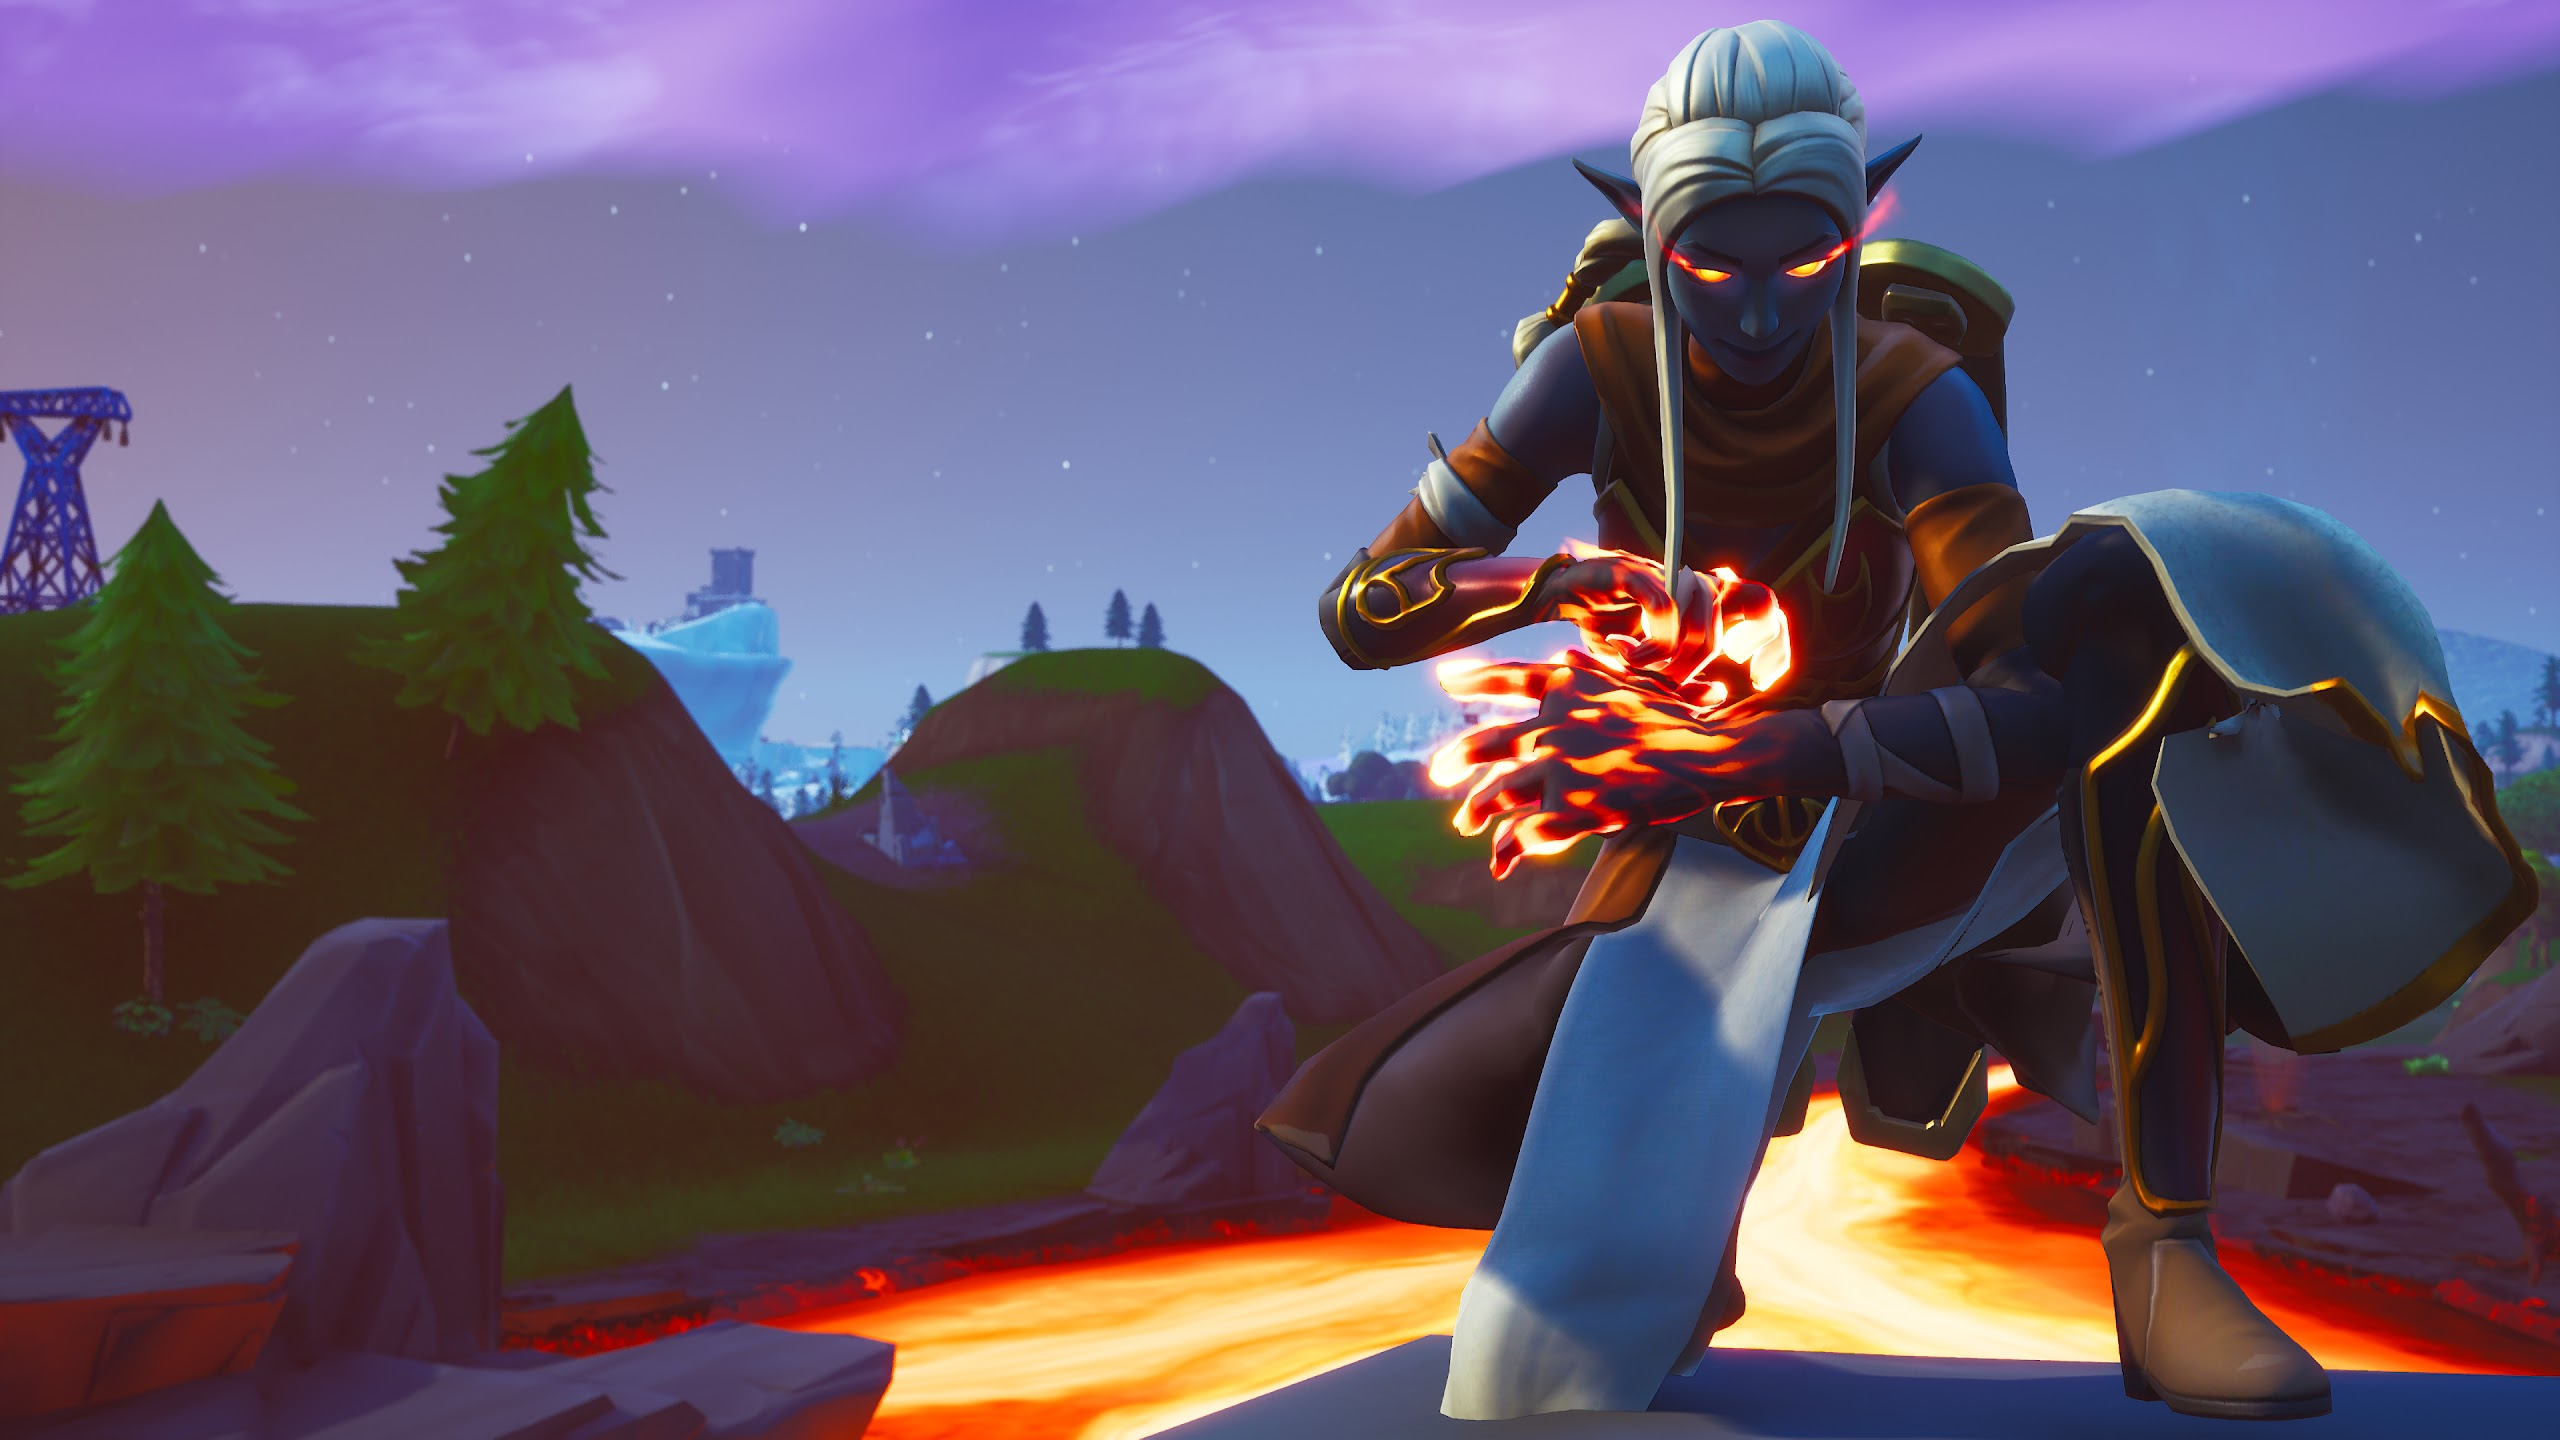 Imagenes De Fortnite 2560x1440 - Aimbot Fortnite Que Es